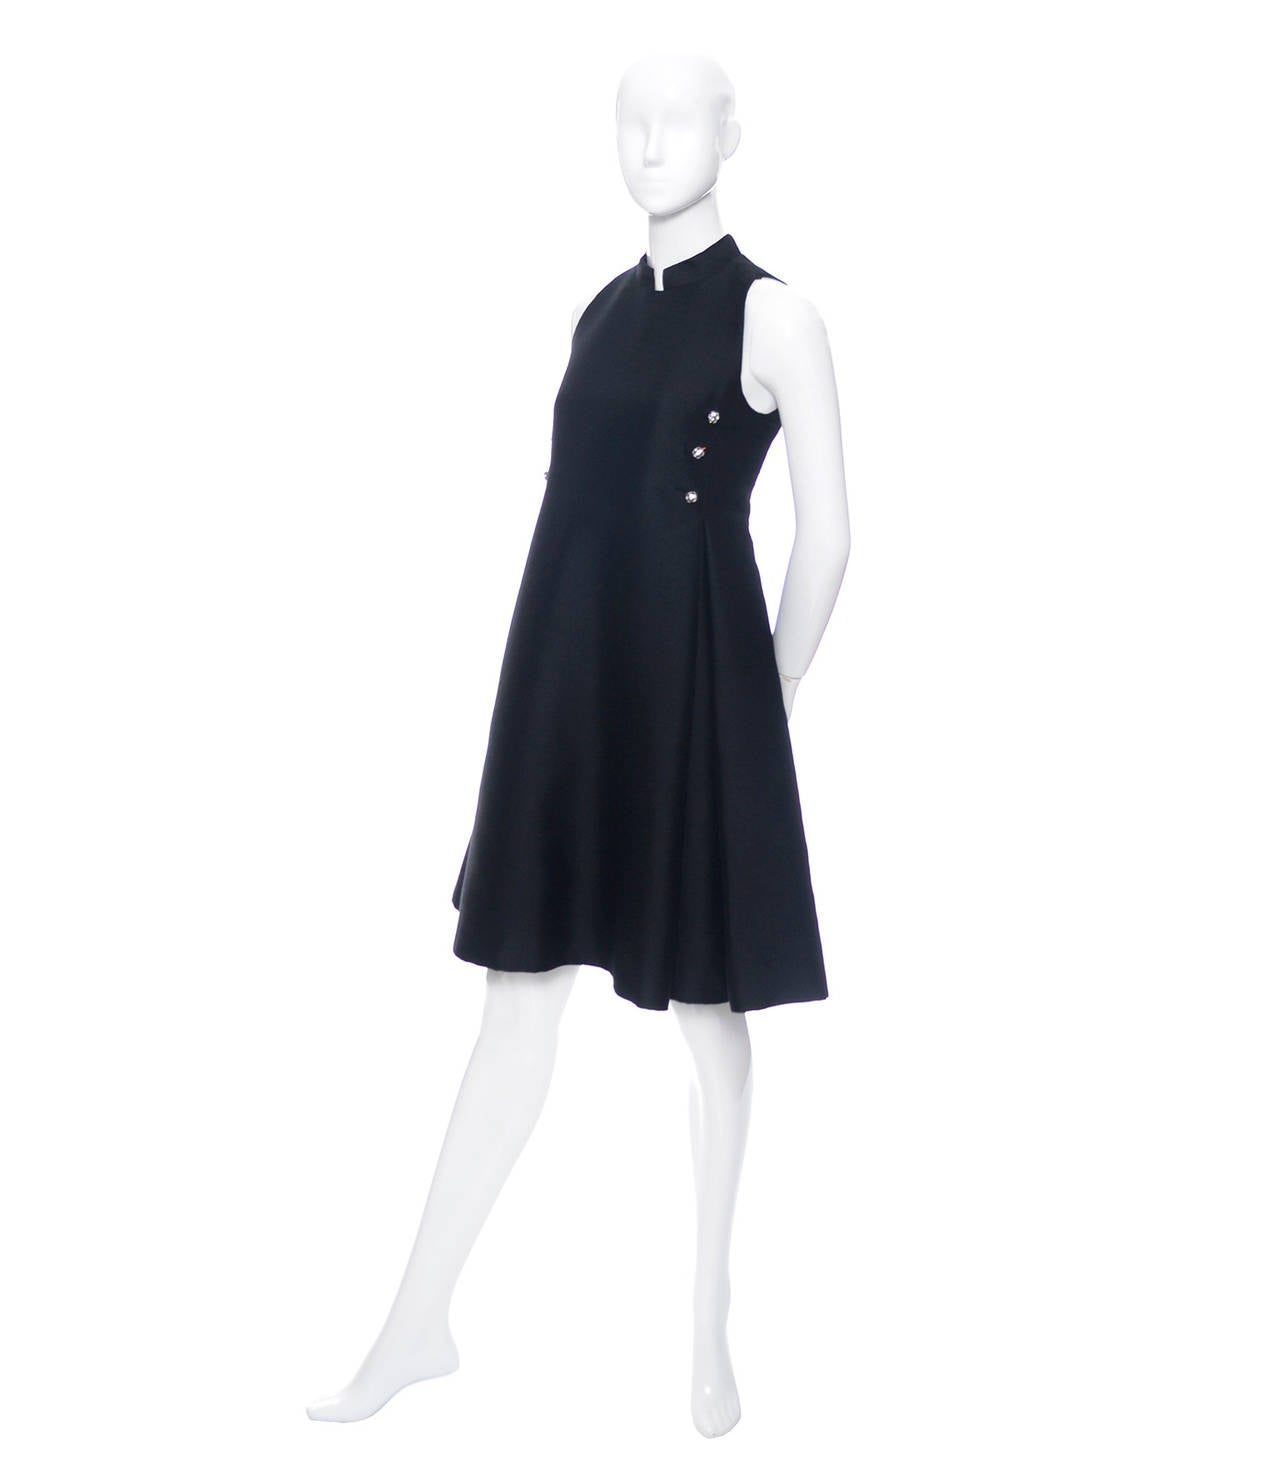 Geoffrey Beene 1960s Vintage Midi Dress Mod Black Cocktail Baby Doll Rhinestones For Sale 4